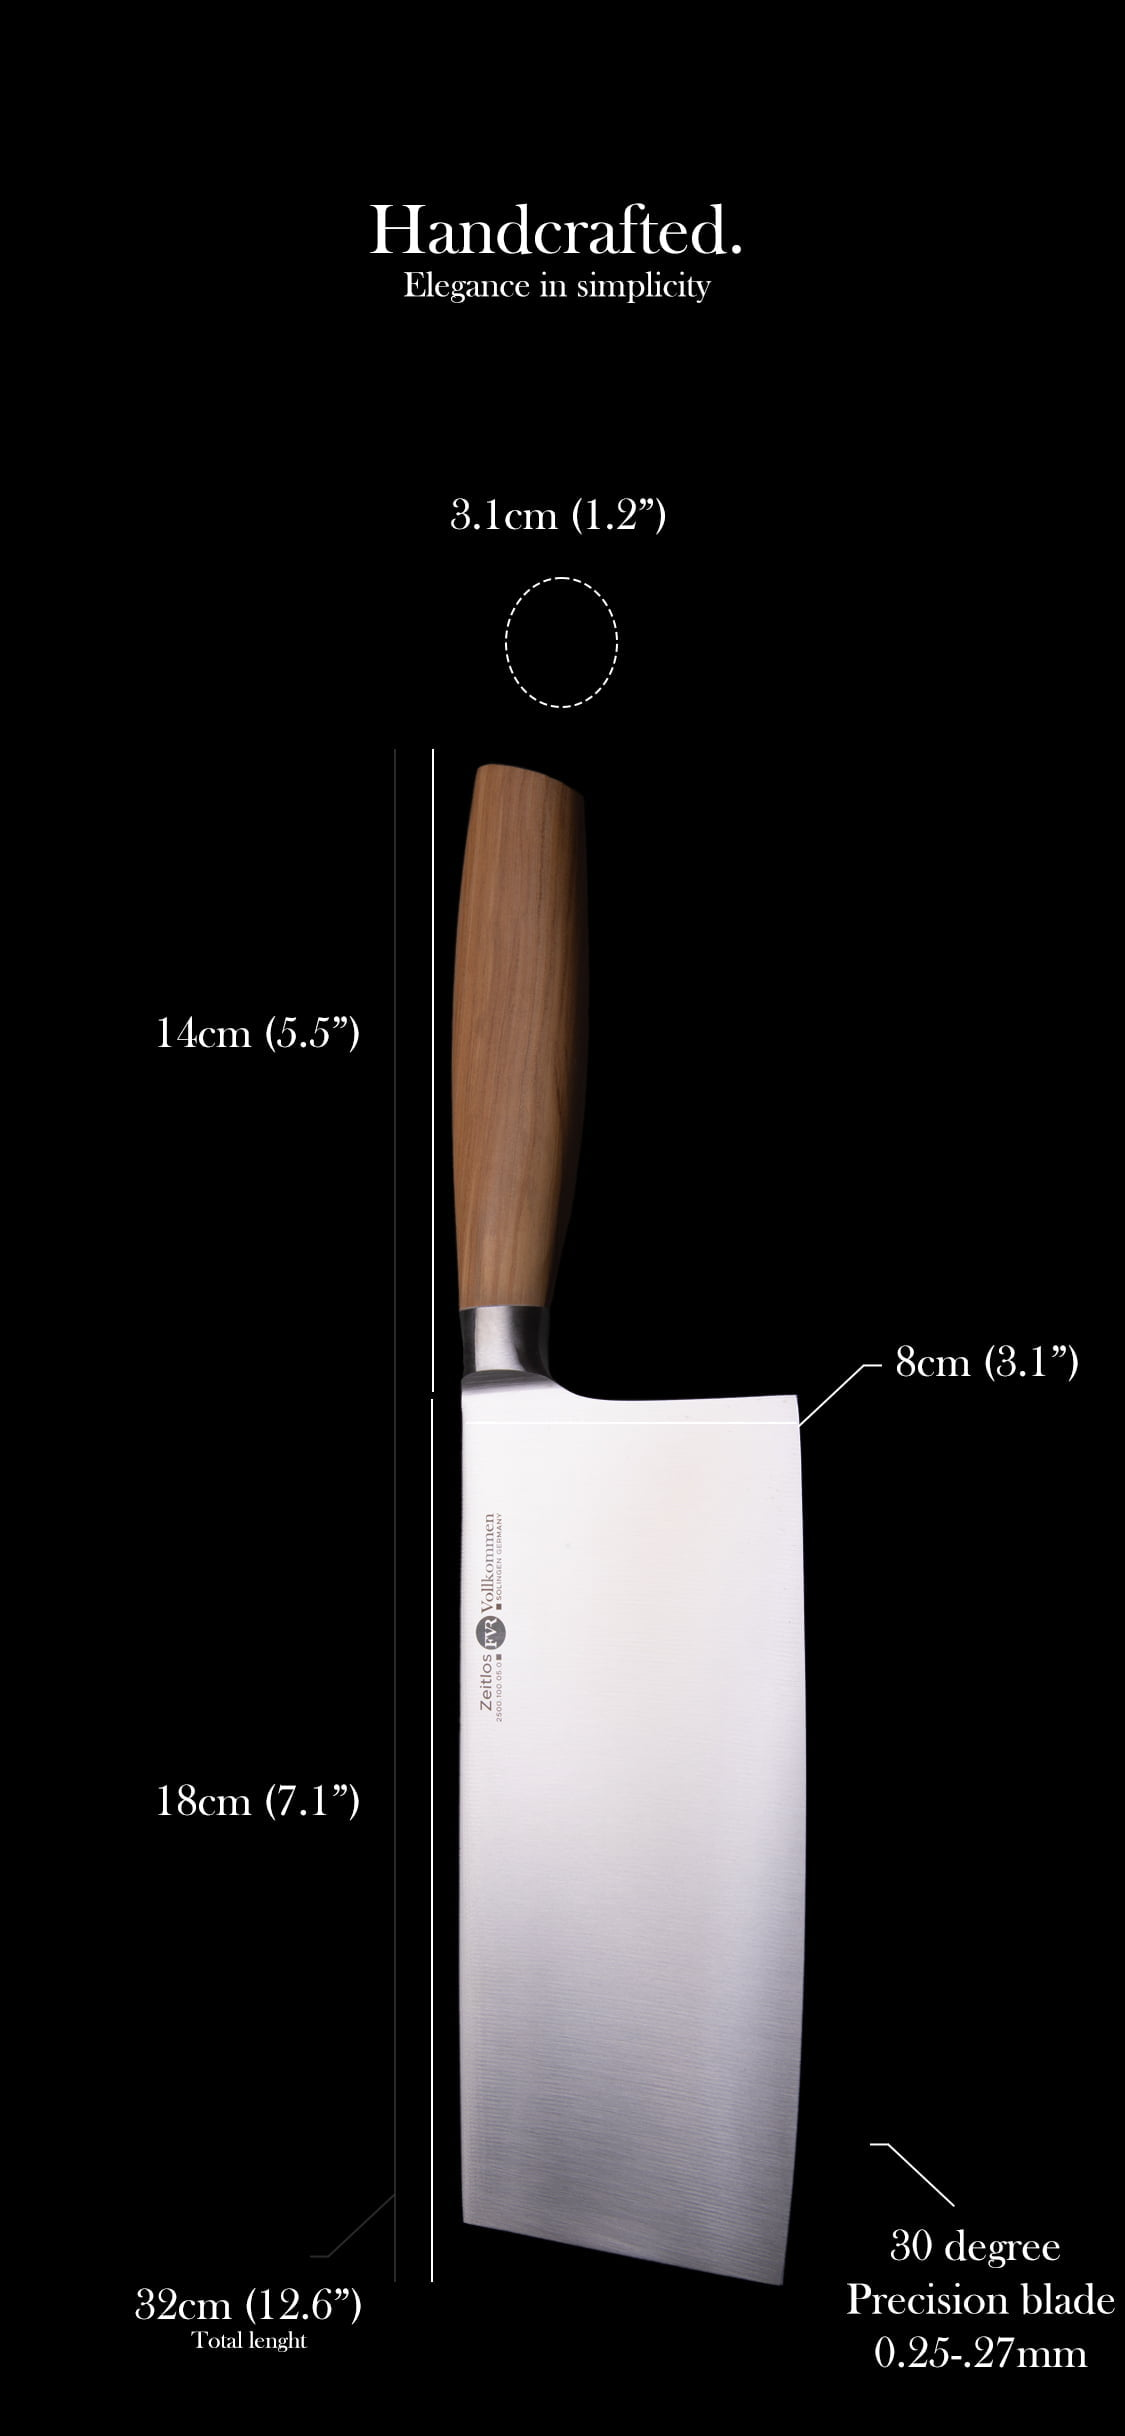 FVR Zeitlos Chinese Chef's Knife Dimensions